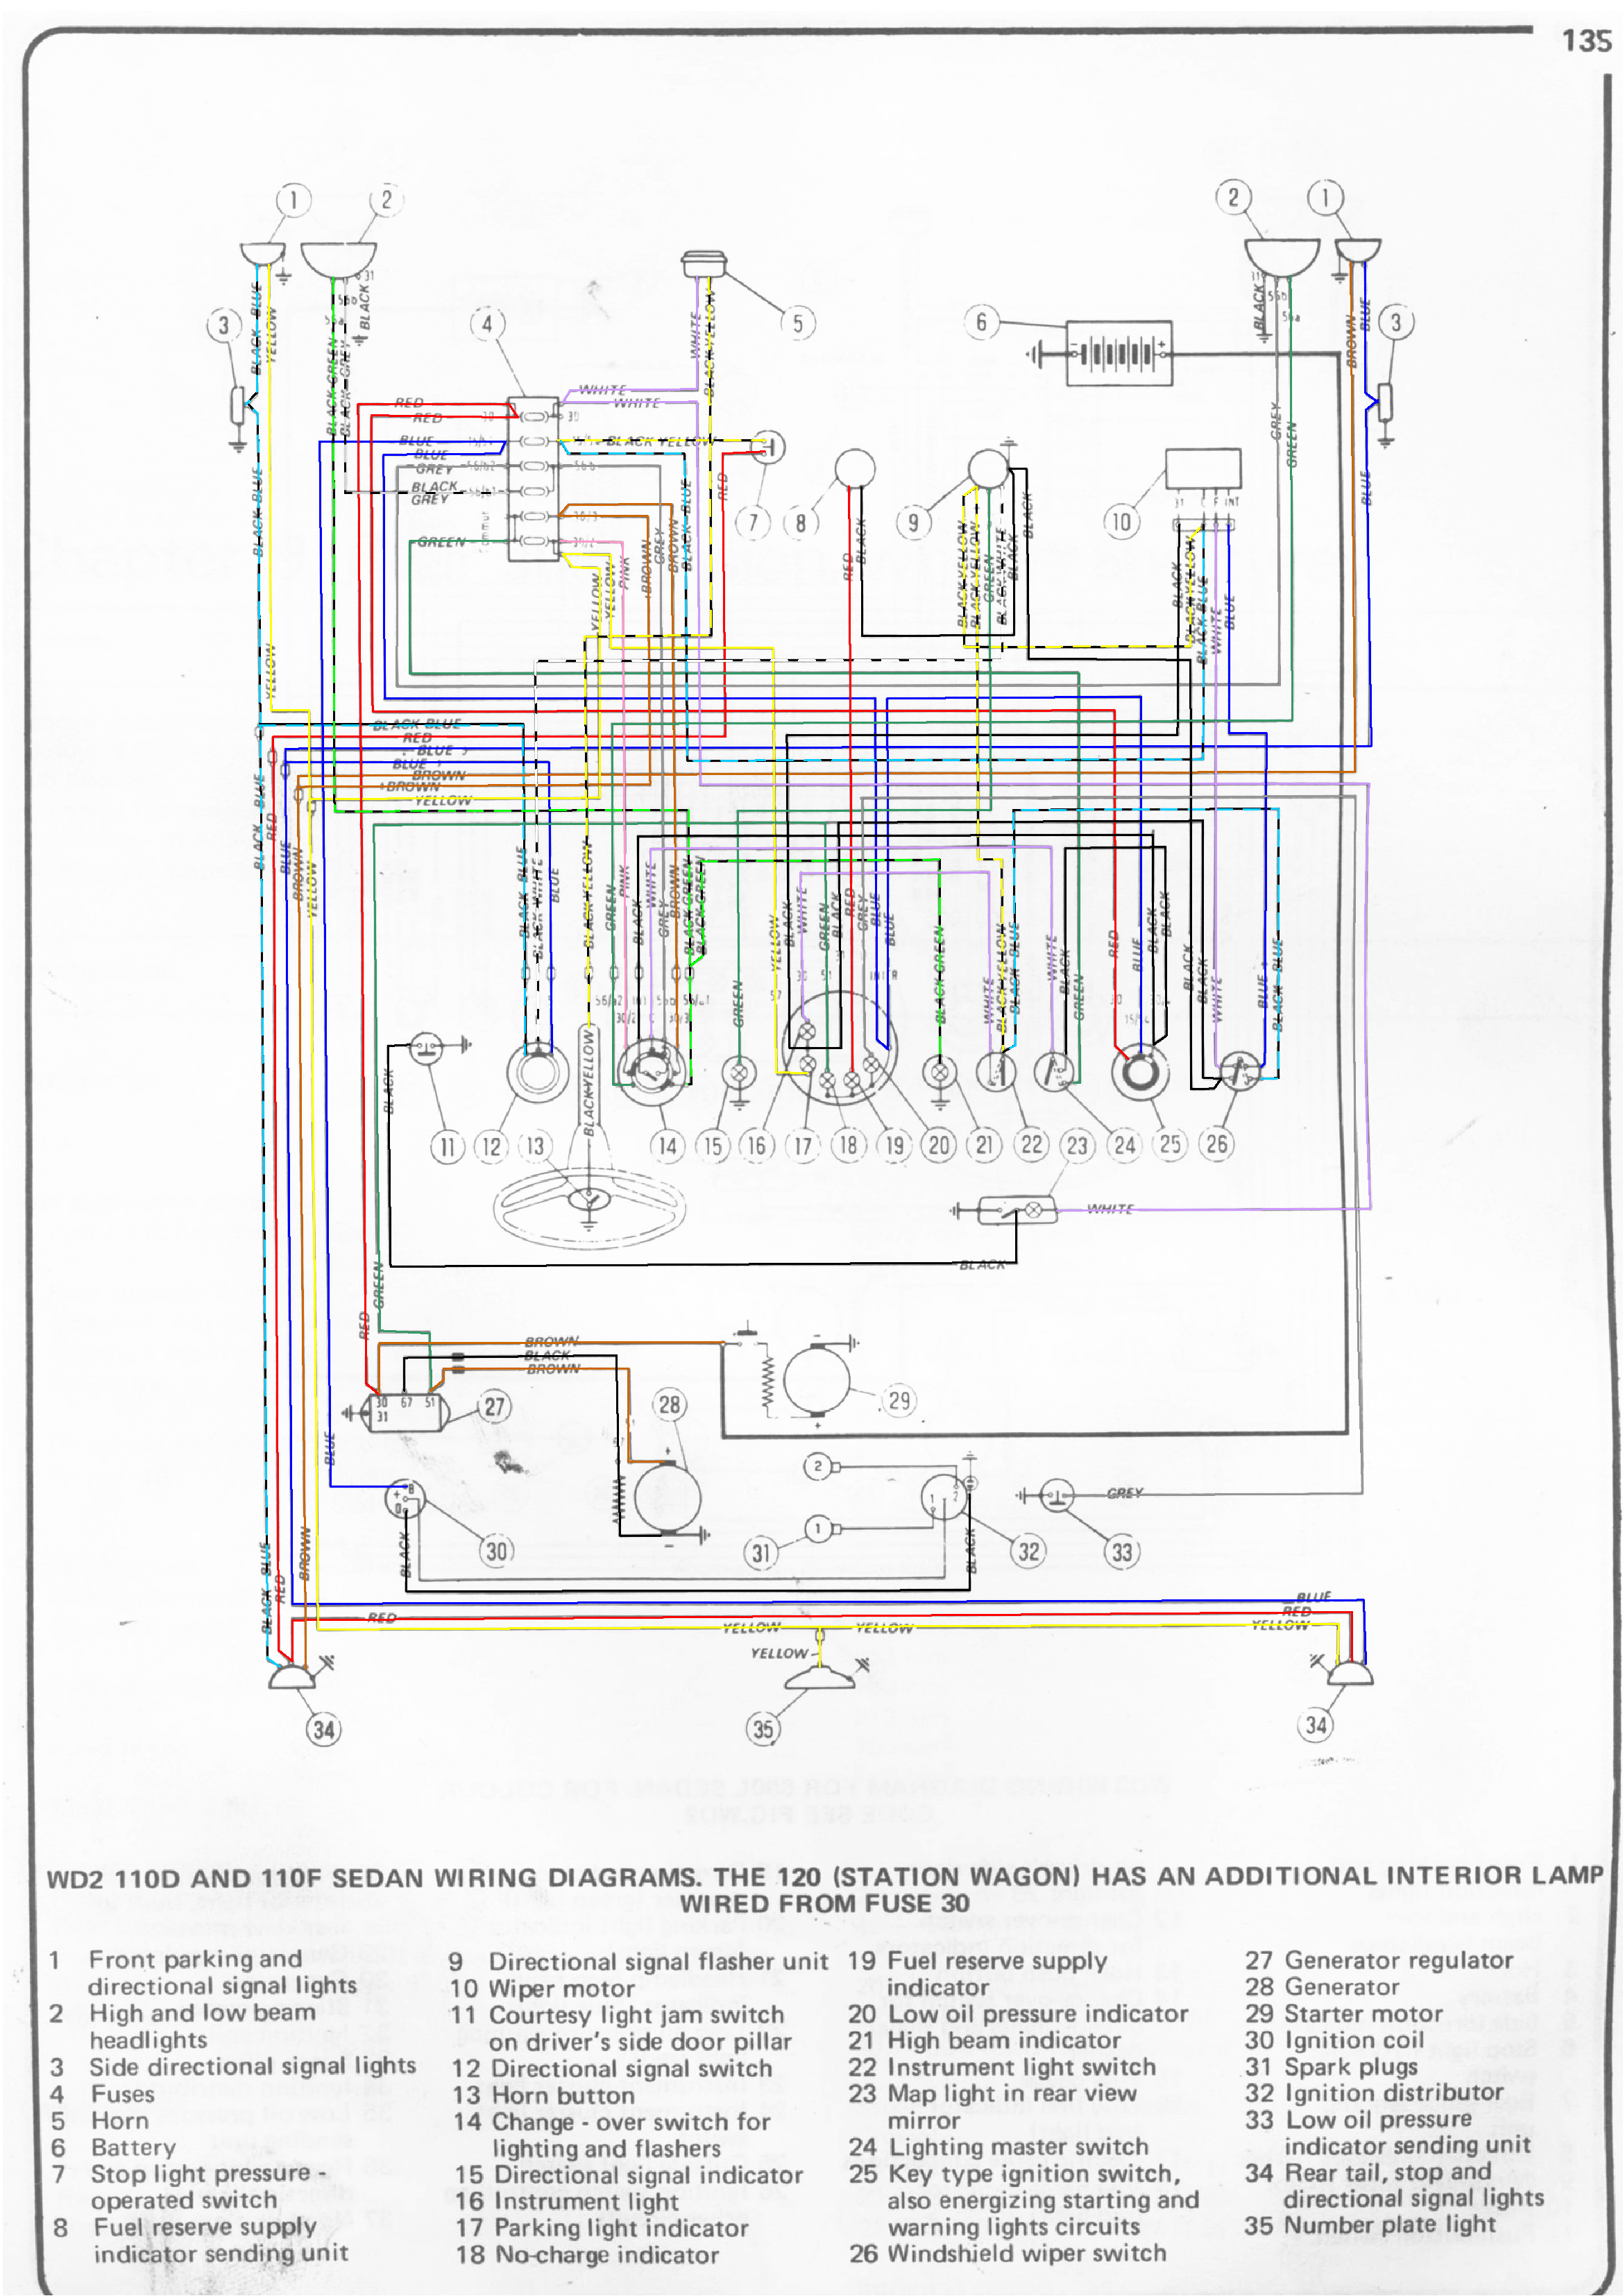 1973 Fiat 1300 Wiring Diagram - Diagram Design Sources series-keman -  series-keman.paoloemartina.itdiagram database - paoloemartina.it